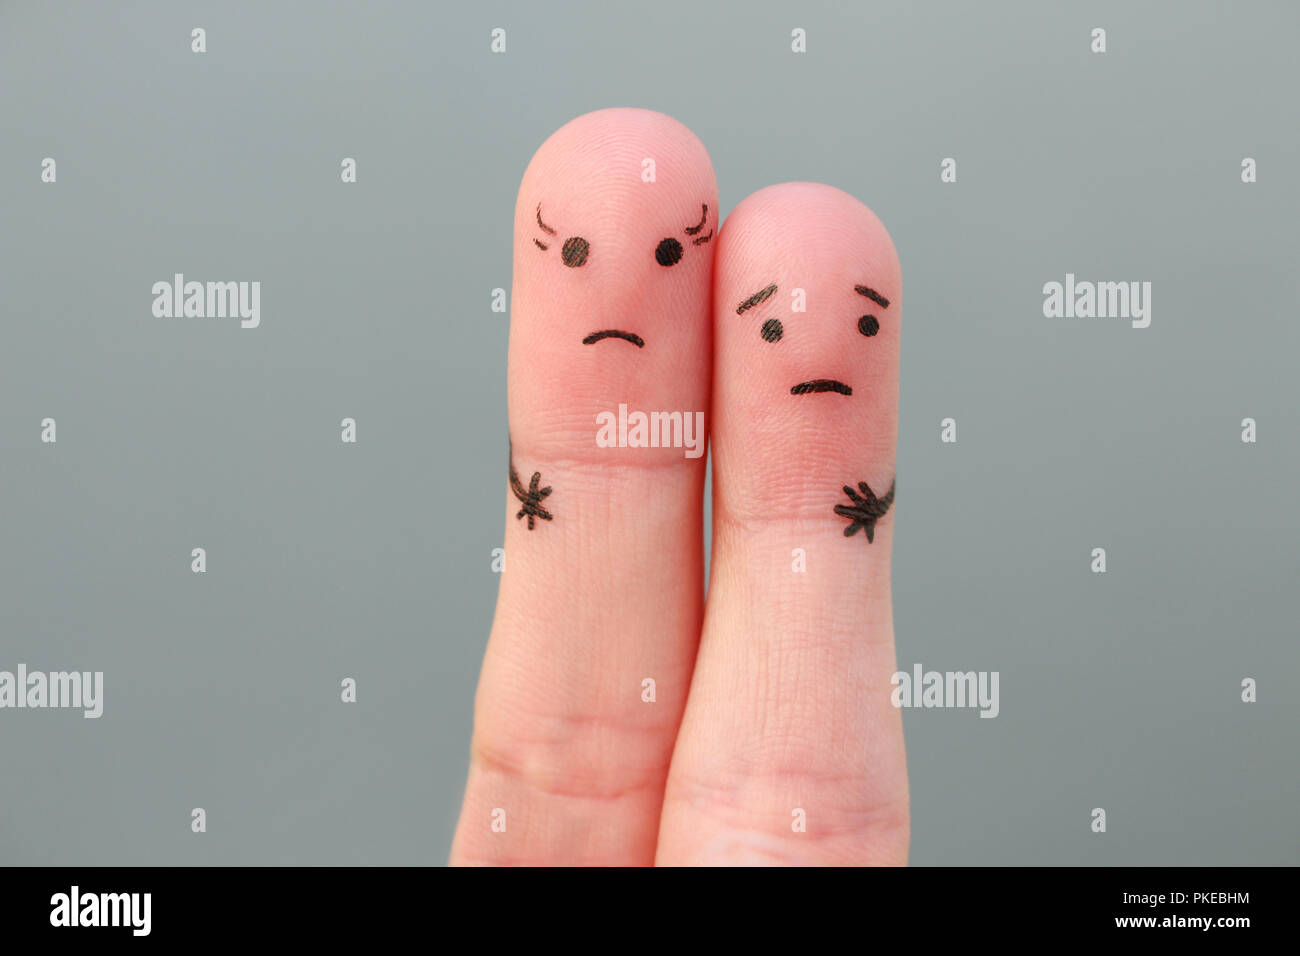 Fingers art of couple. Concept woman taller than man. - Stock Image